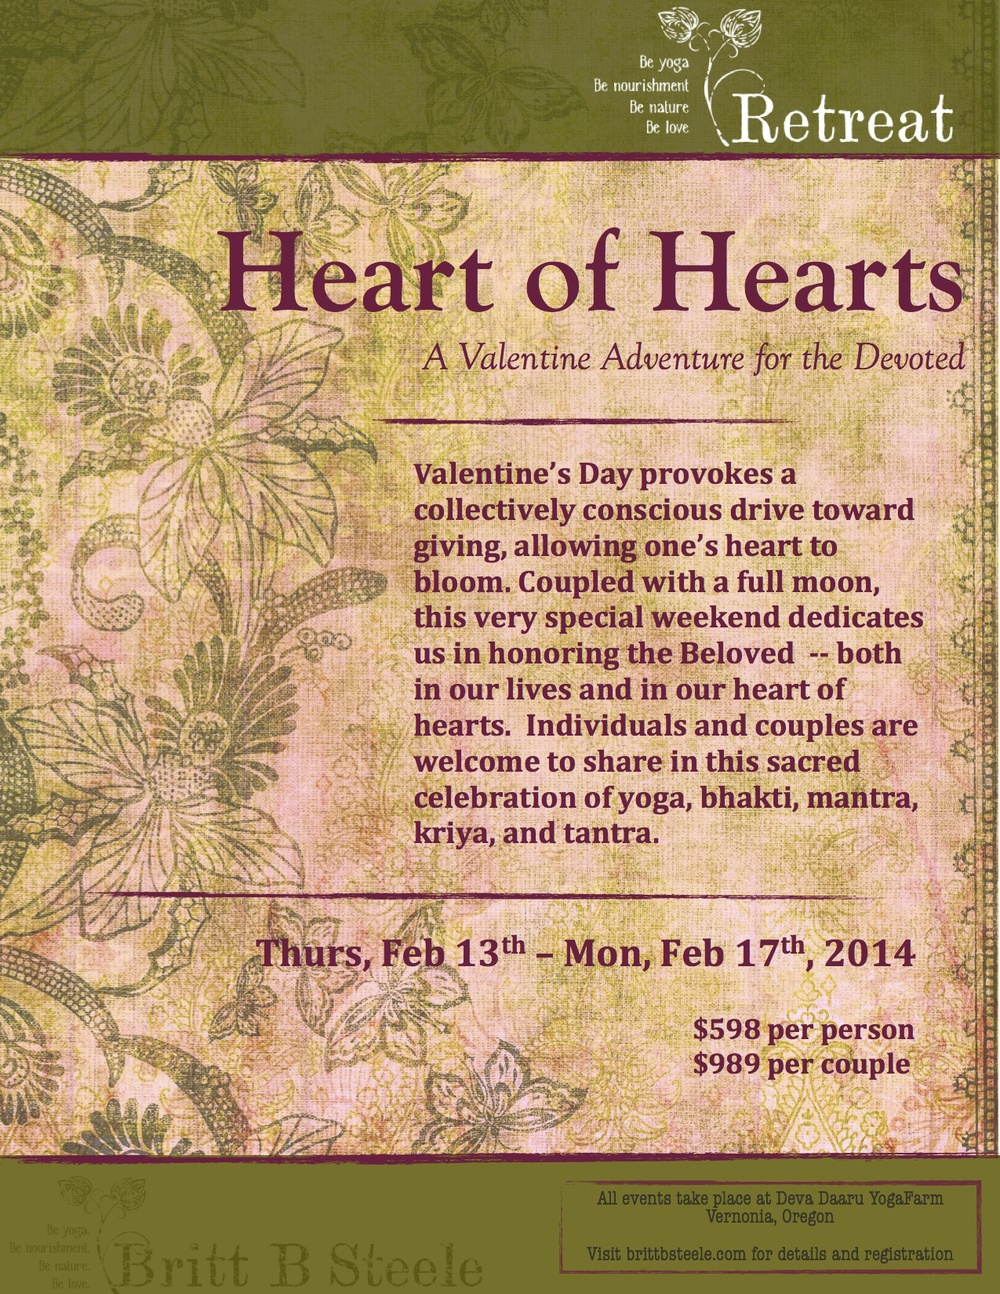 Retreat- Heart of Hearts Valentines.jpg